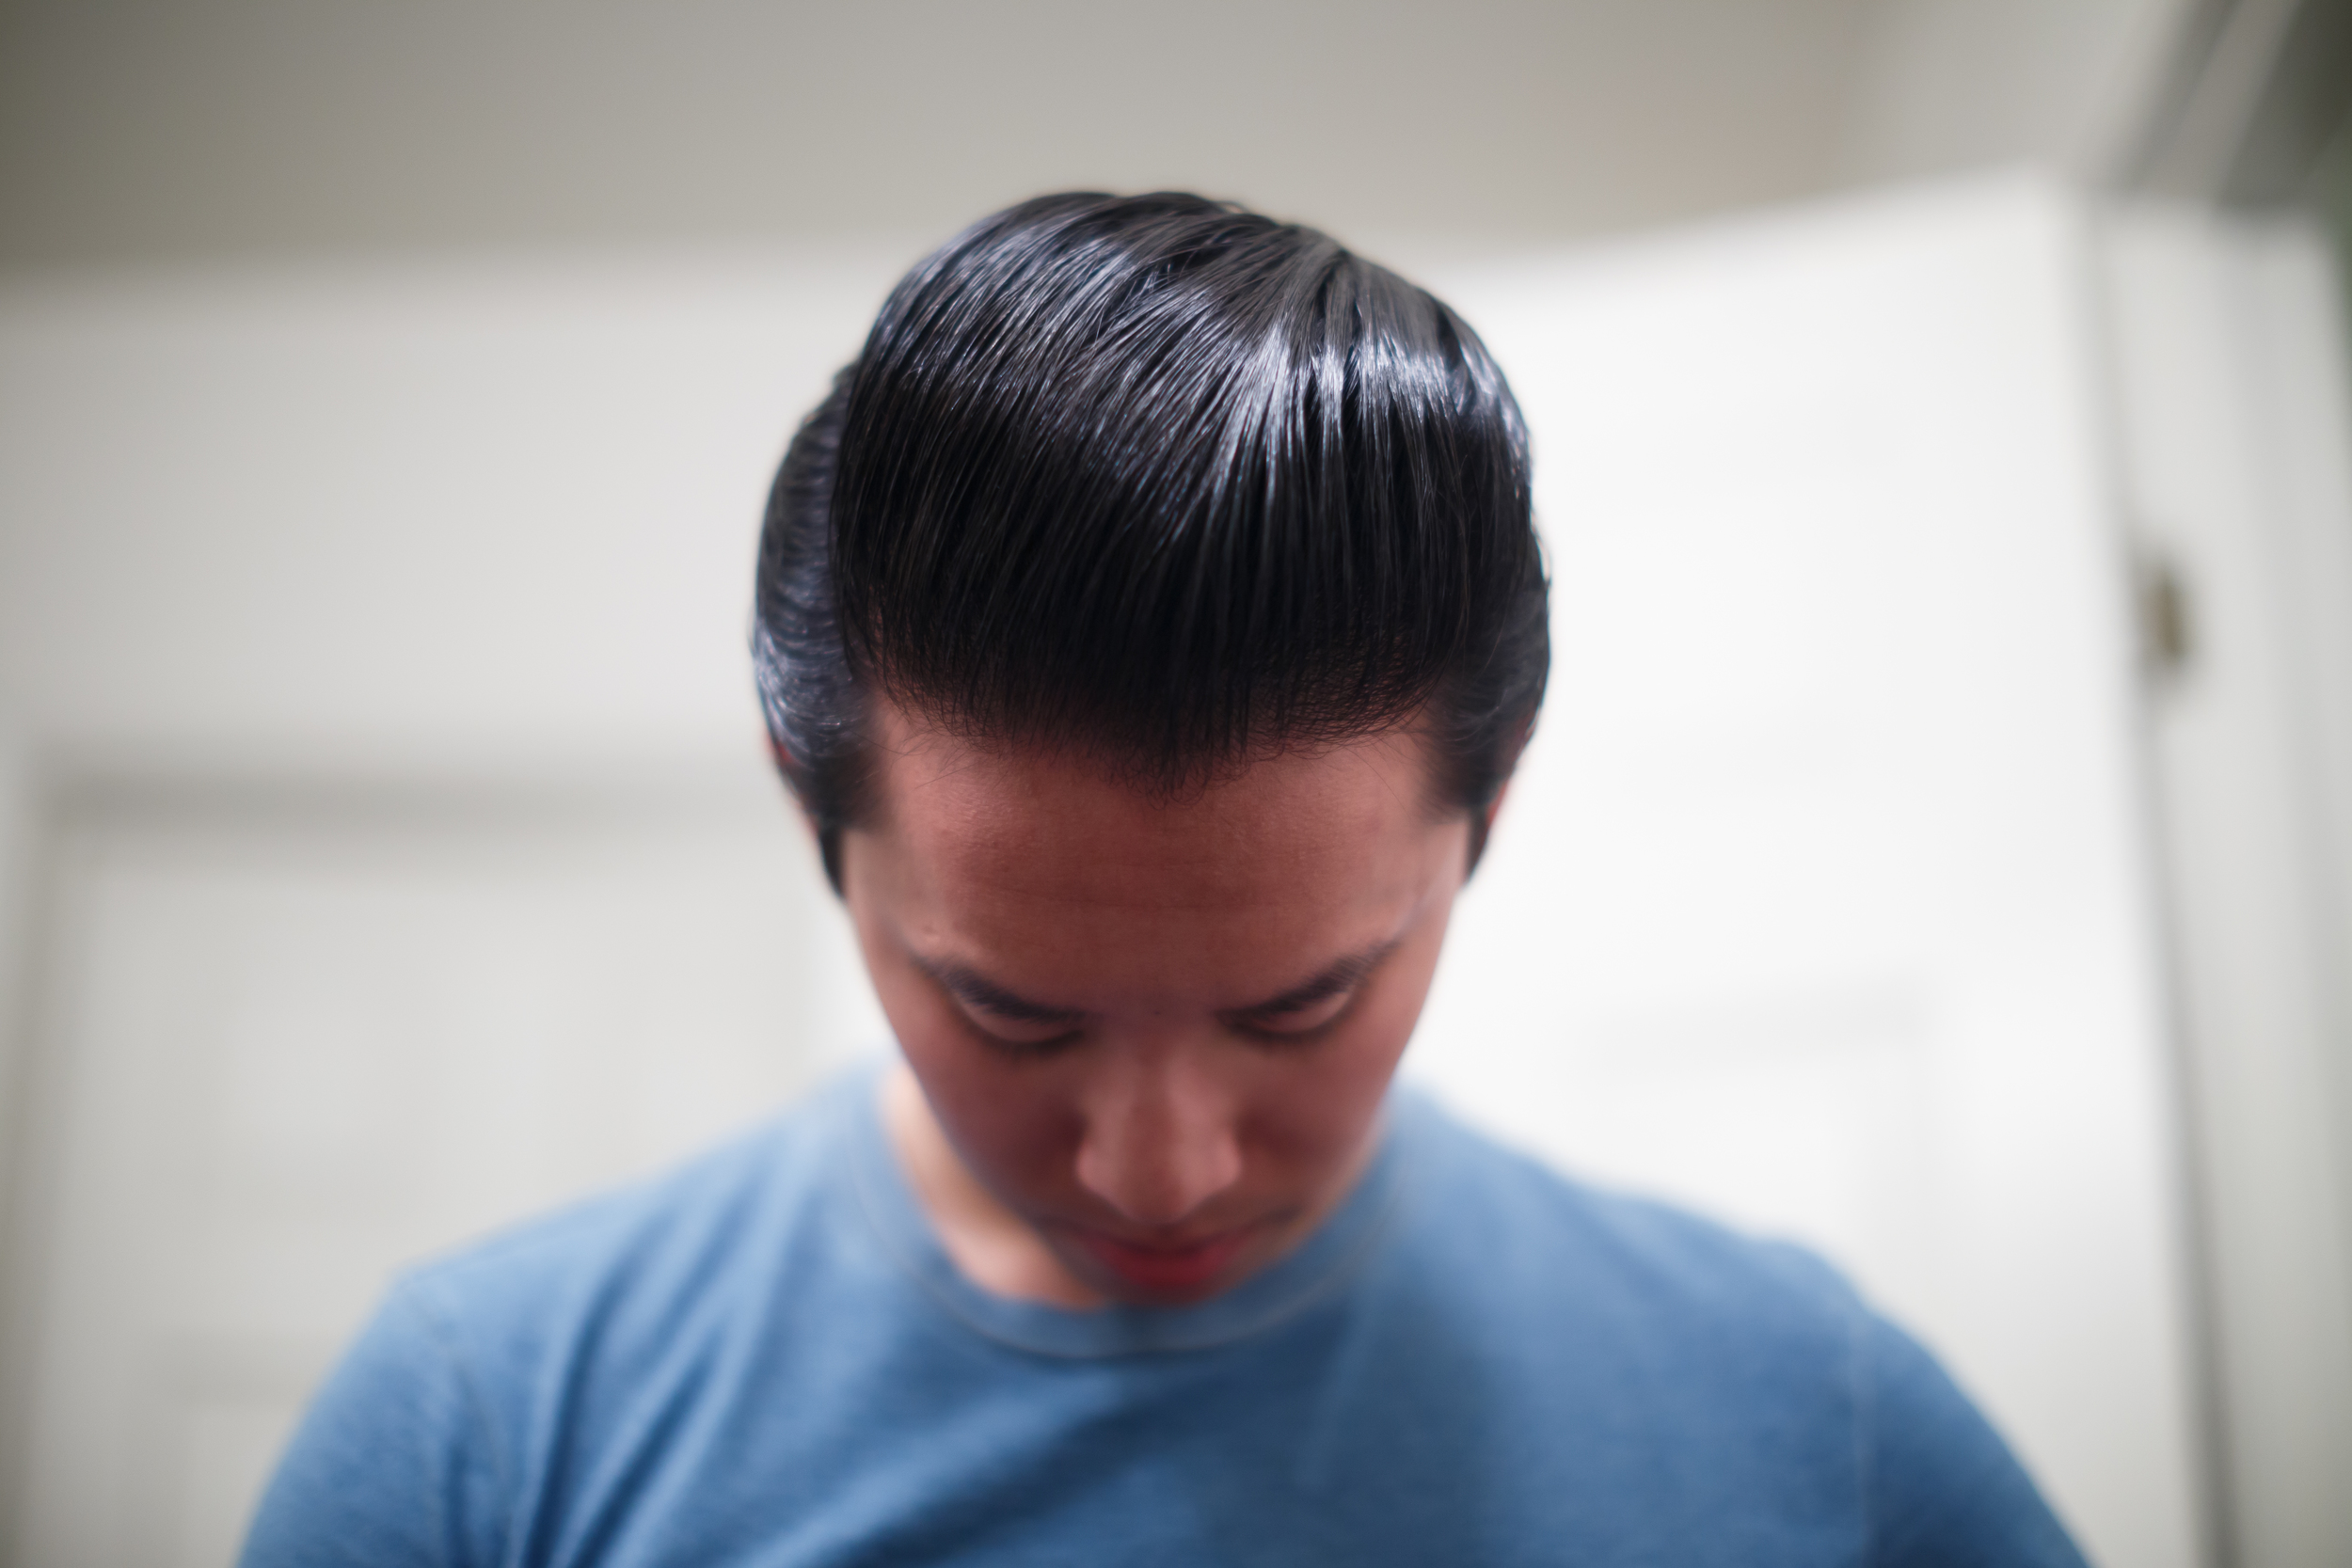 Charming Pomade Cool Grease CoolGrease Hedgelion Japan Japanese Hair Hairstyle Pomp Pompadour fwe